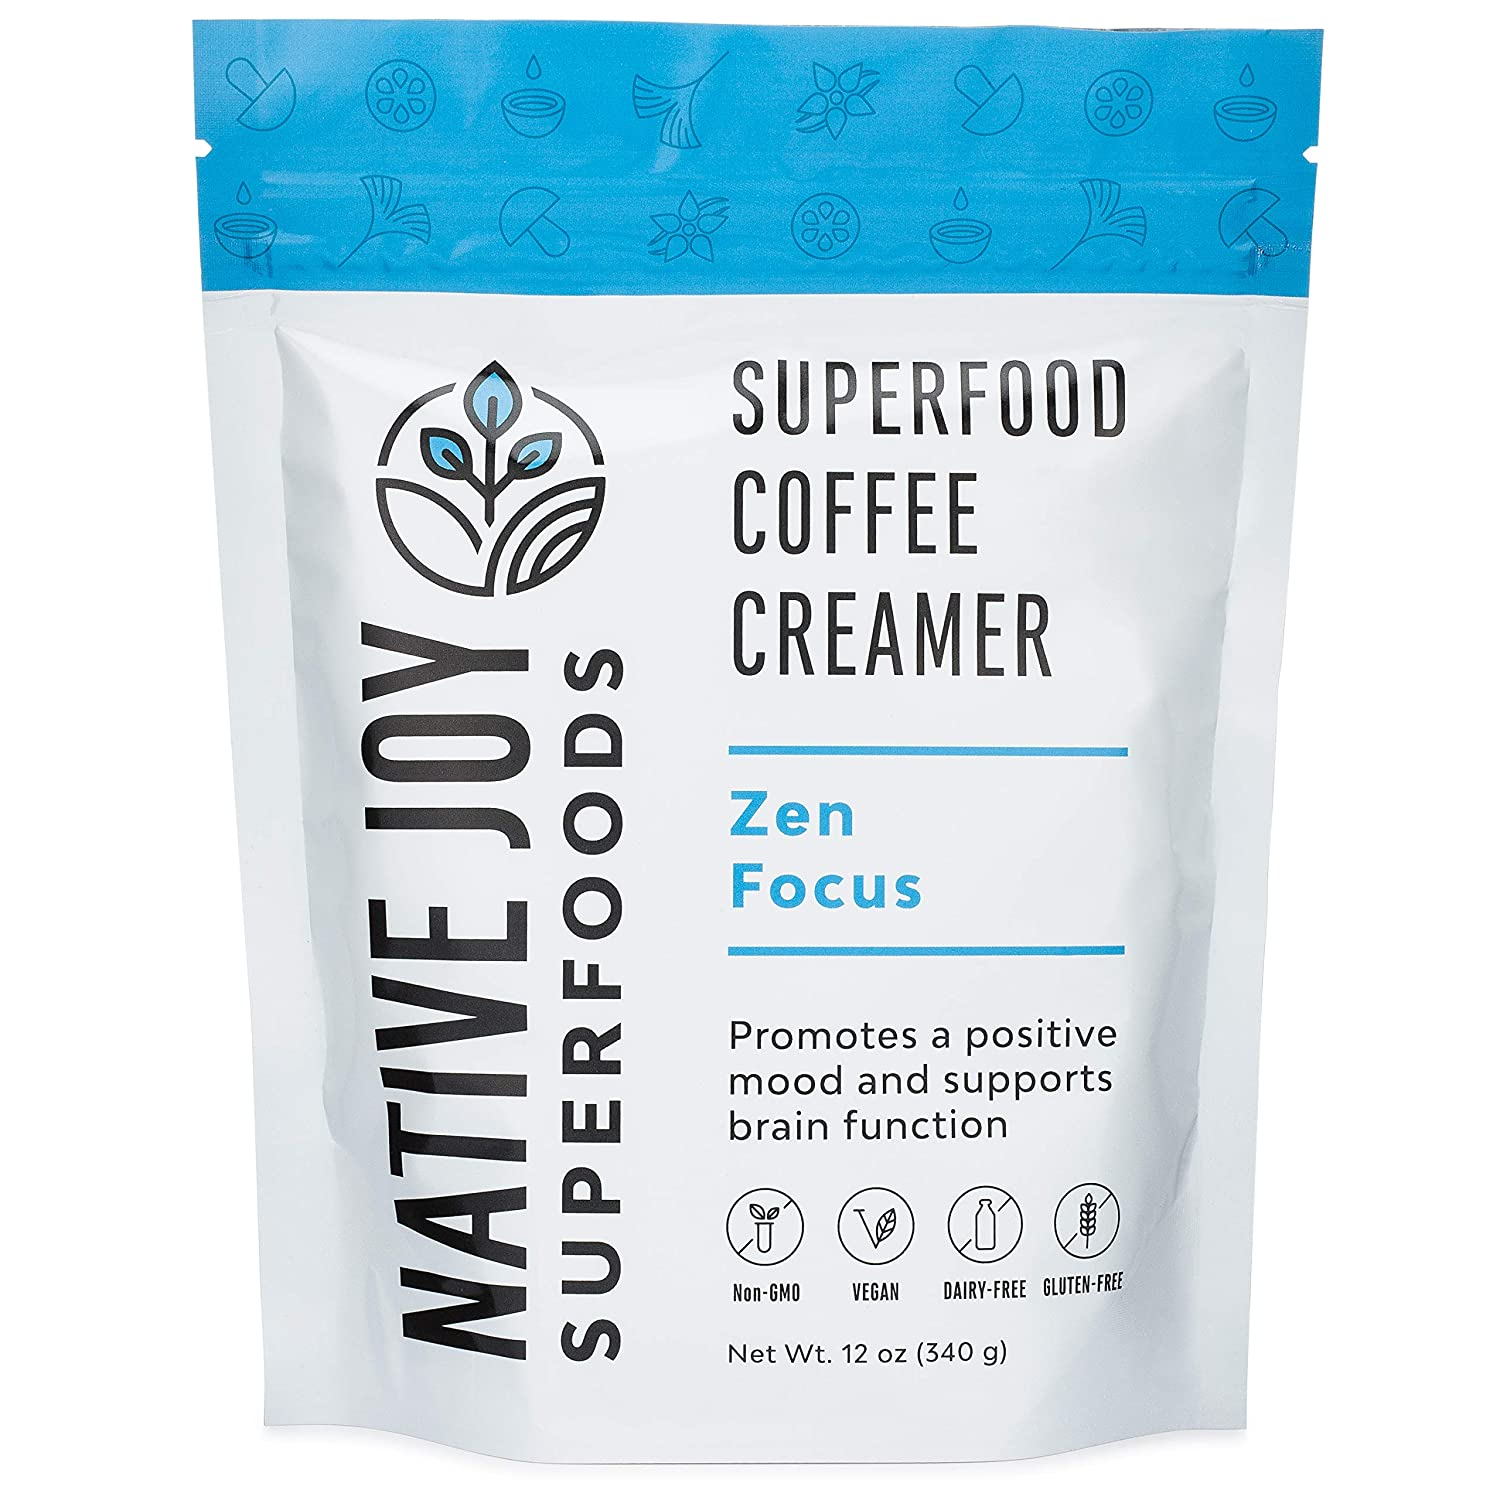 7. Native Joy Superfoods - Zen Focus Coffee Creamer